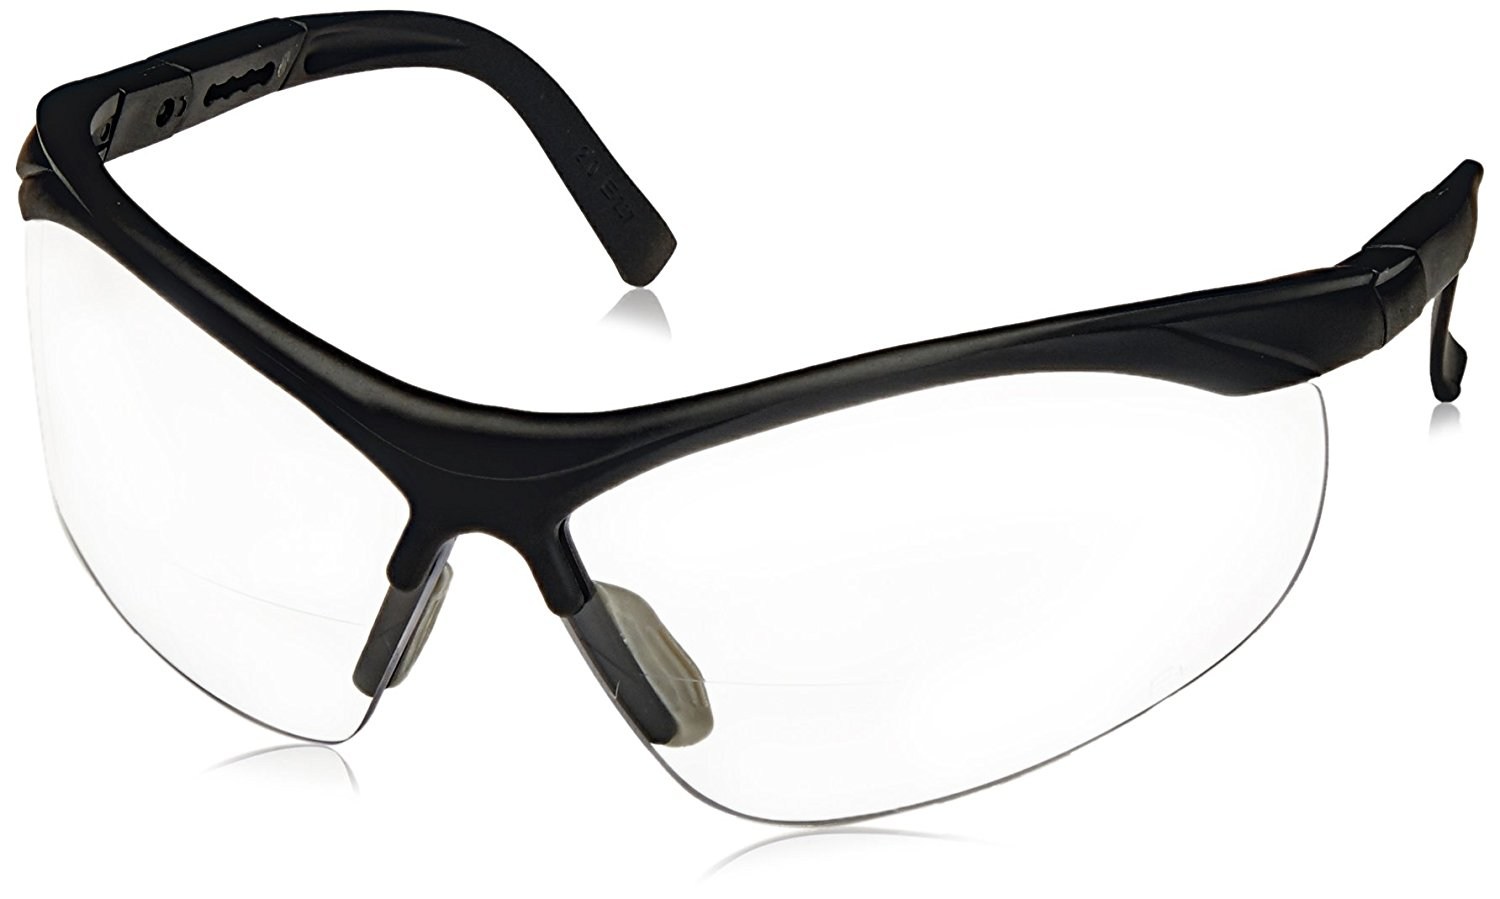 48e50f1c0d70 Get Quotations · ERB 16872 ERBx Safety Glasses with +2.0 Bifocal Power,  Black Frame with Clear Lens